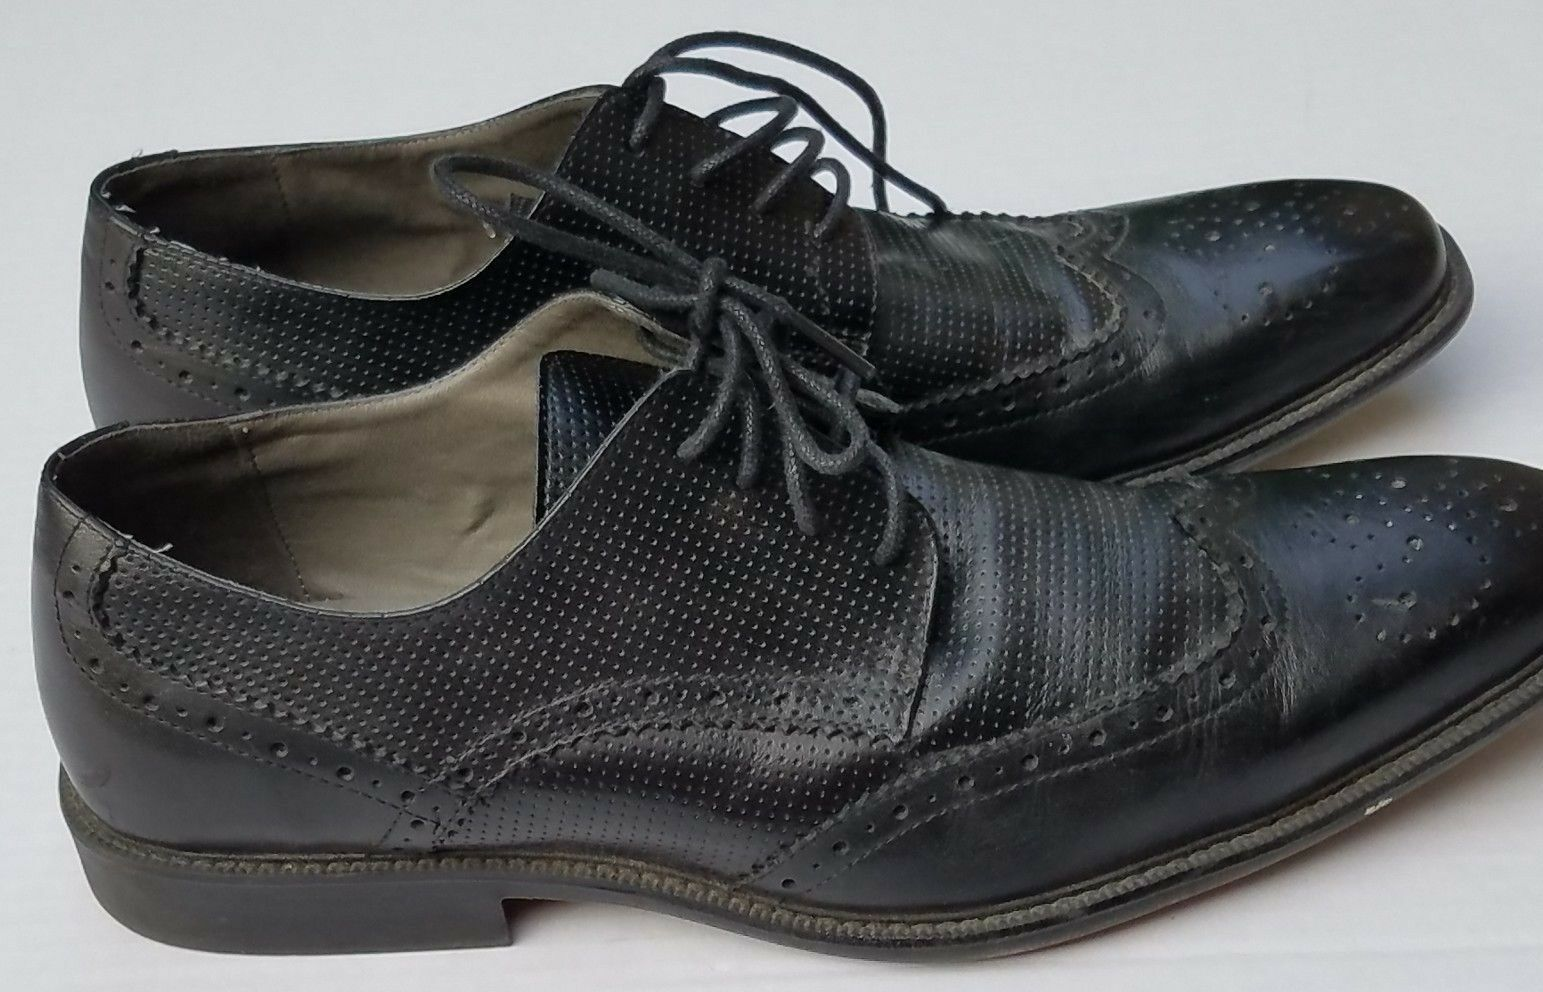 d6d9ff5457290 STEVE MADDEN Black Leather WingTip Dress Oxford Dress Shoes Shoes Shoes  P-Lander Mens 9